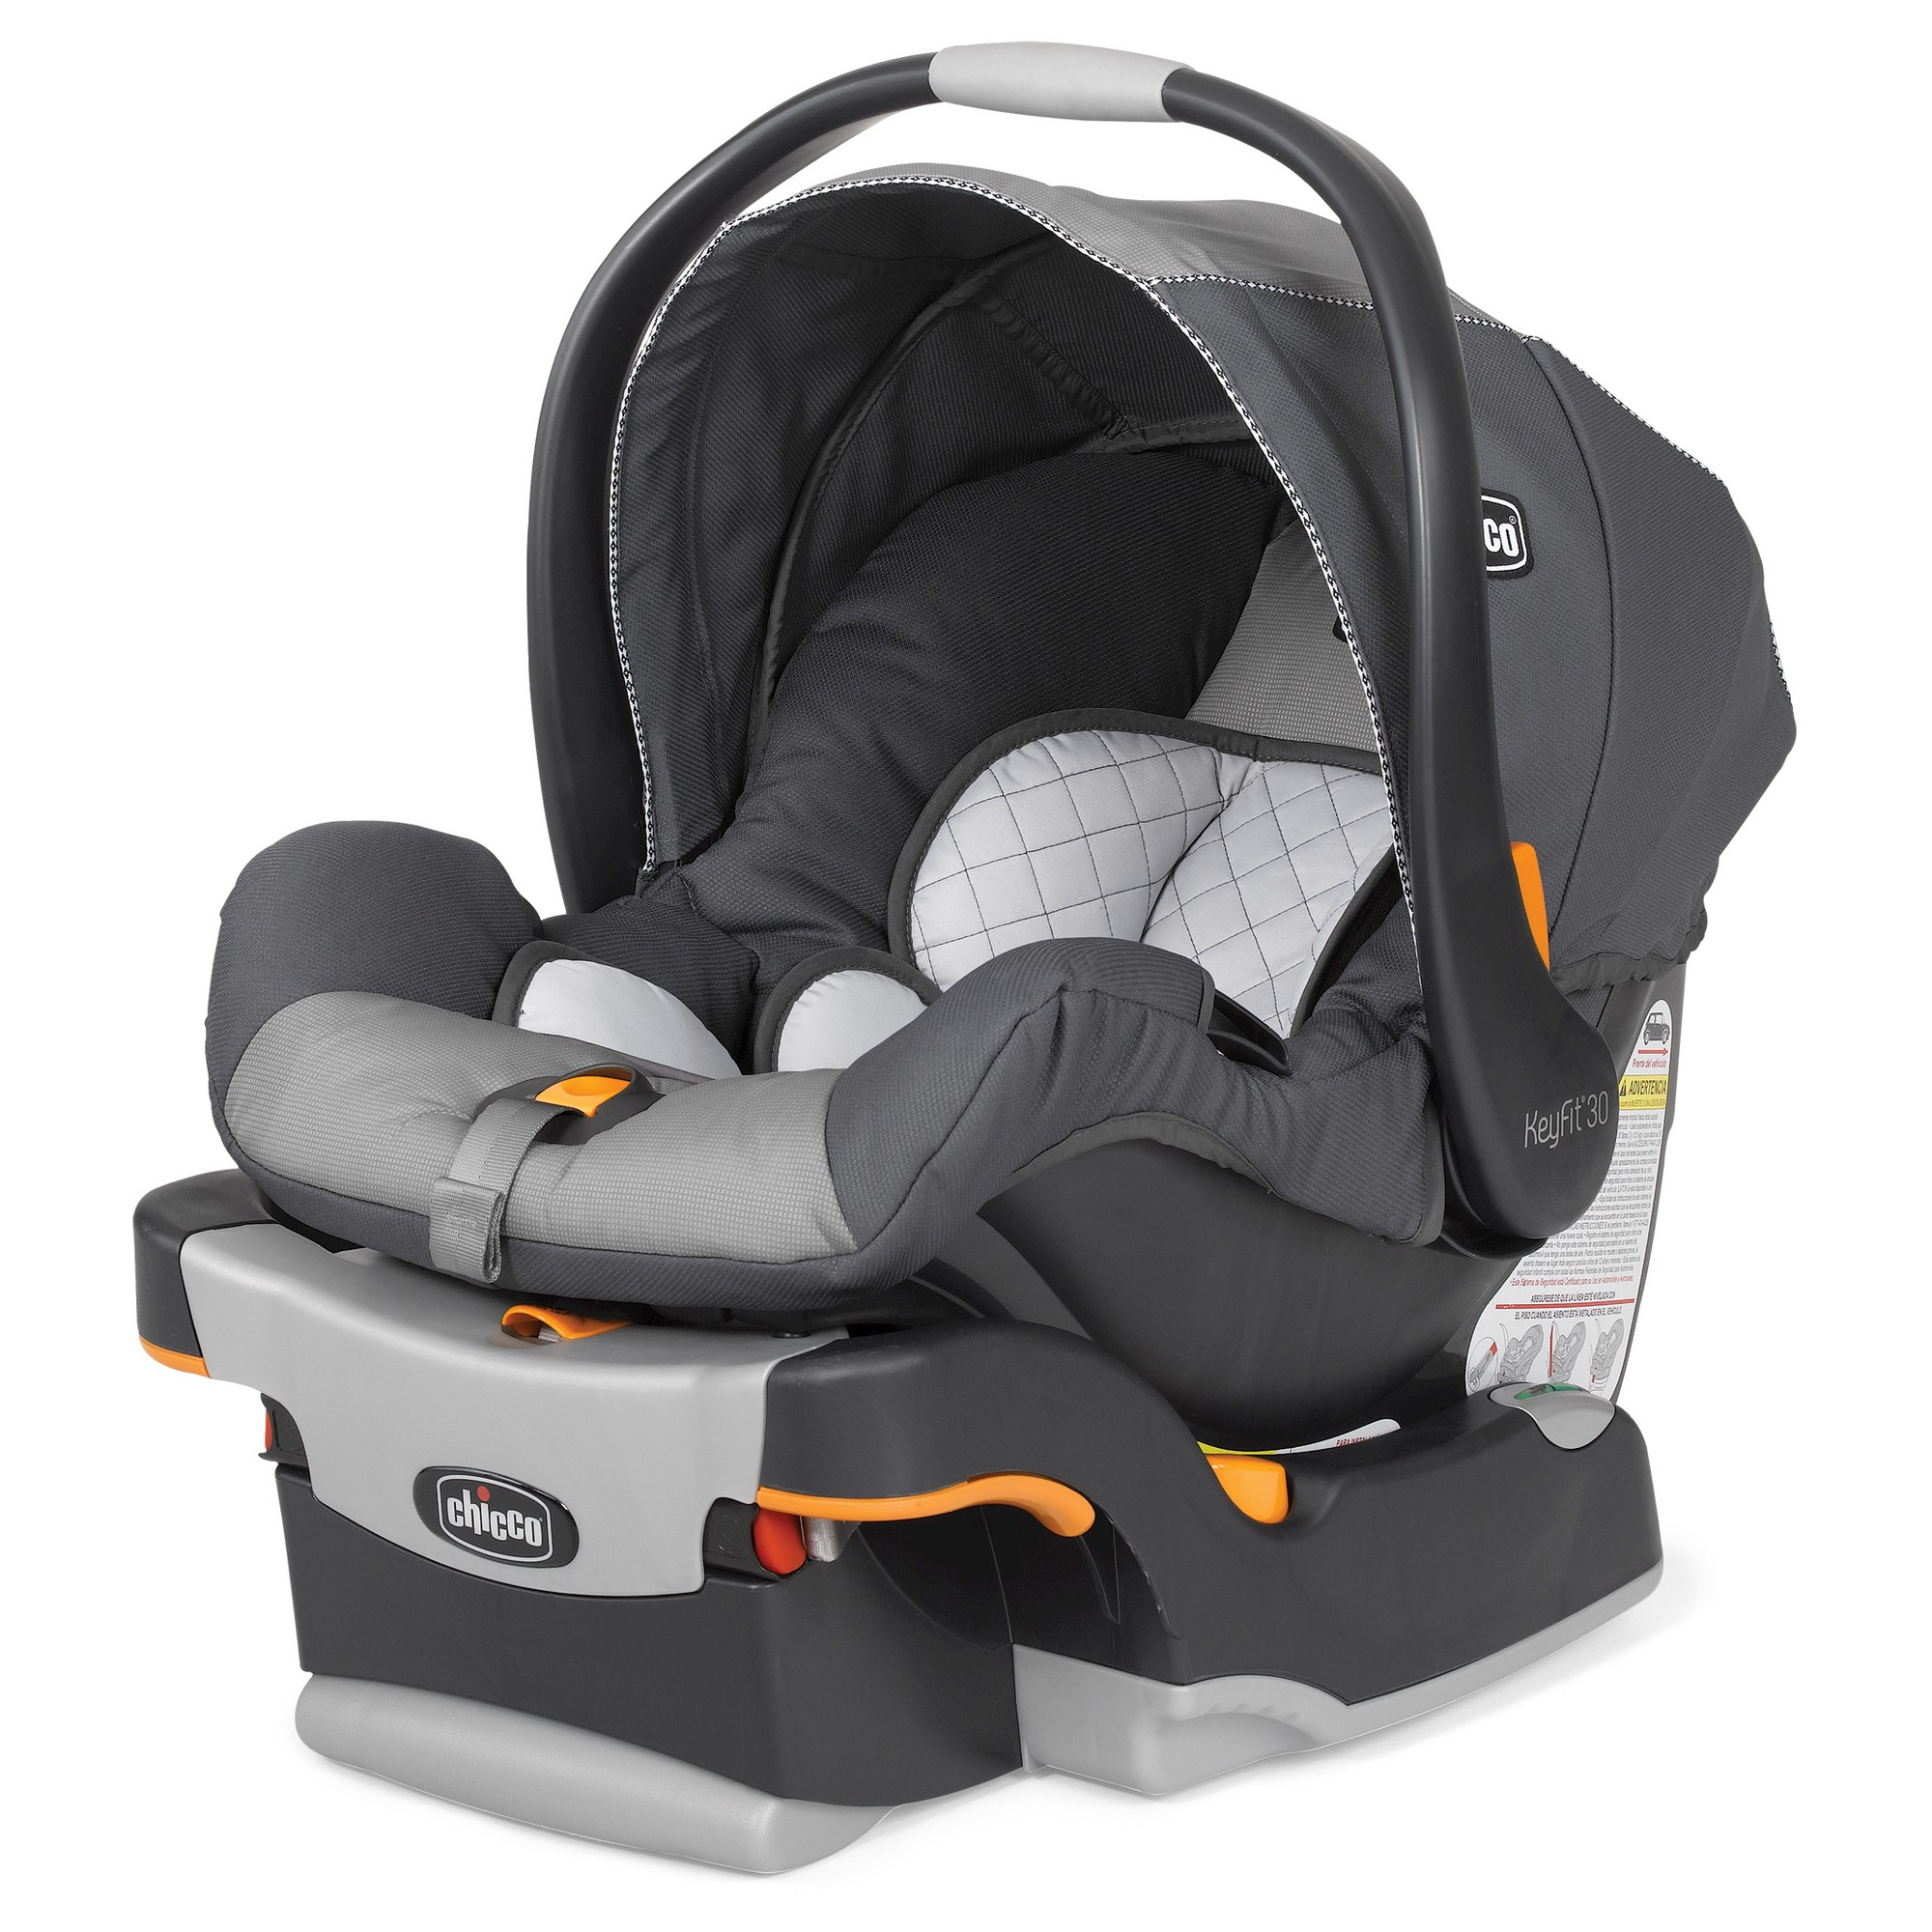 Here is the Brand-new Picture Of Walmart Baby Trend Infant Car Seat